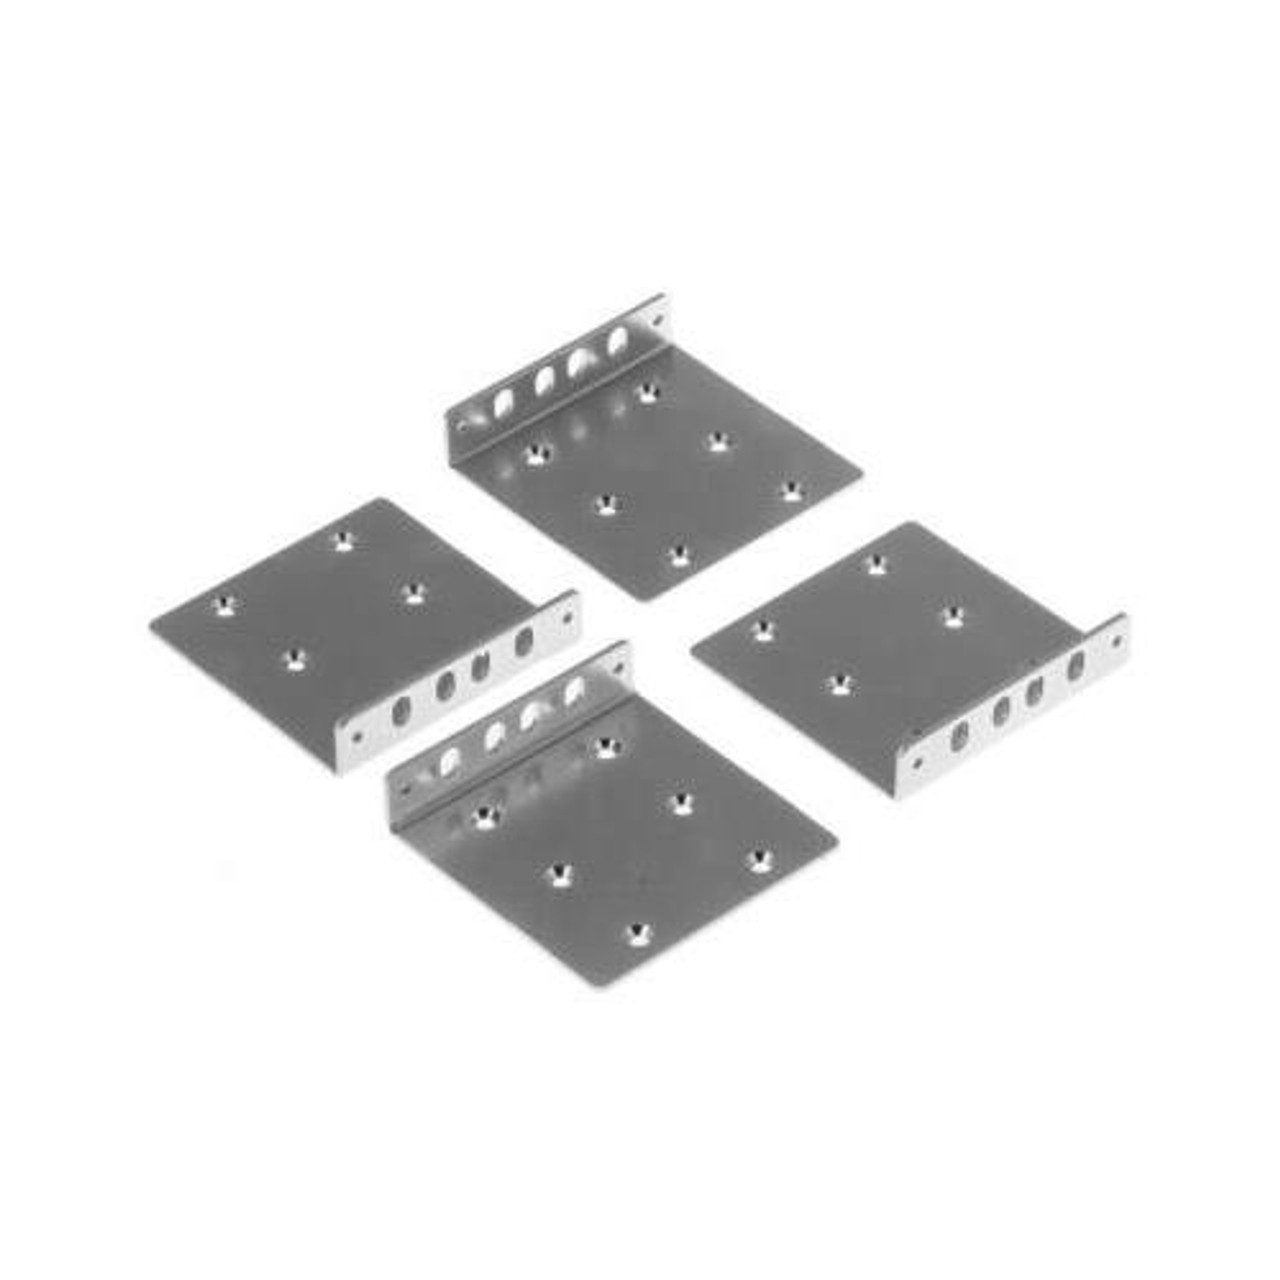 "New ASR1002-ACS 19/"" Rack Mount Kit with Screws for Cisco ASR1002"